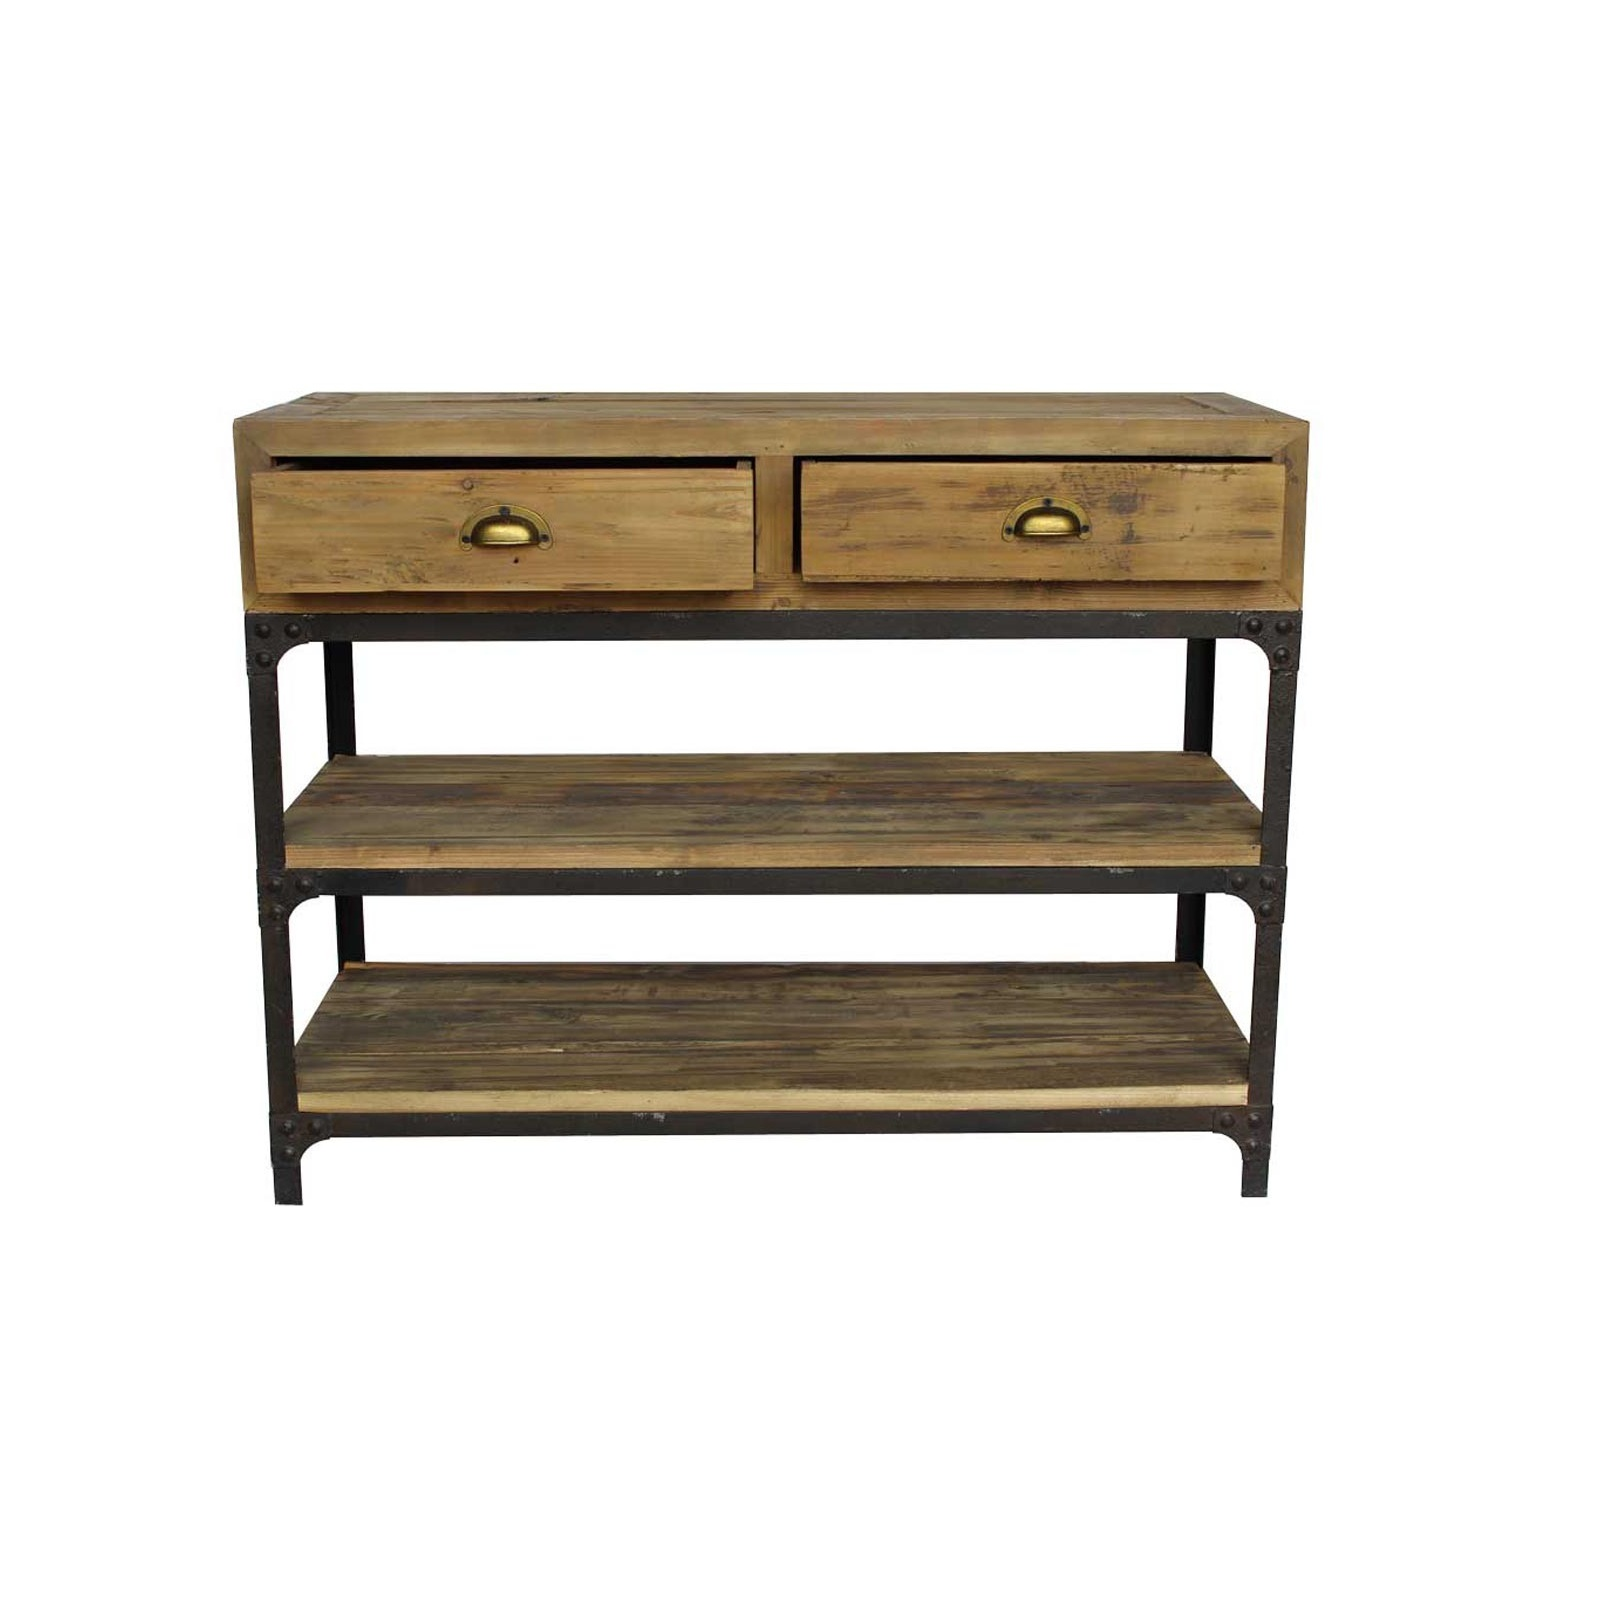 petite console industrielle jp2b d coration. Black Bedroom Furniture Sets. Home Design Ideas